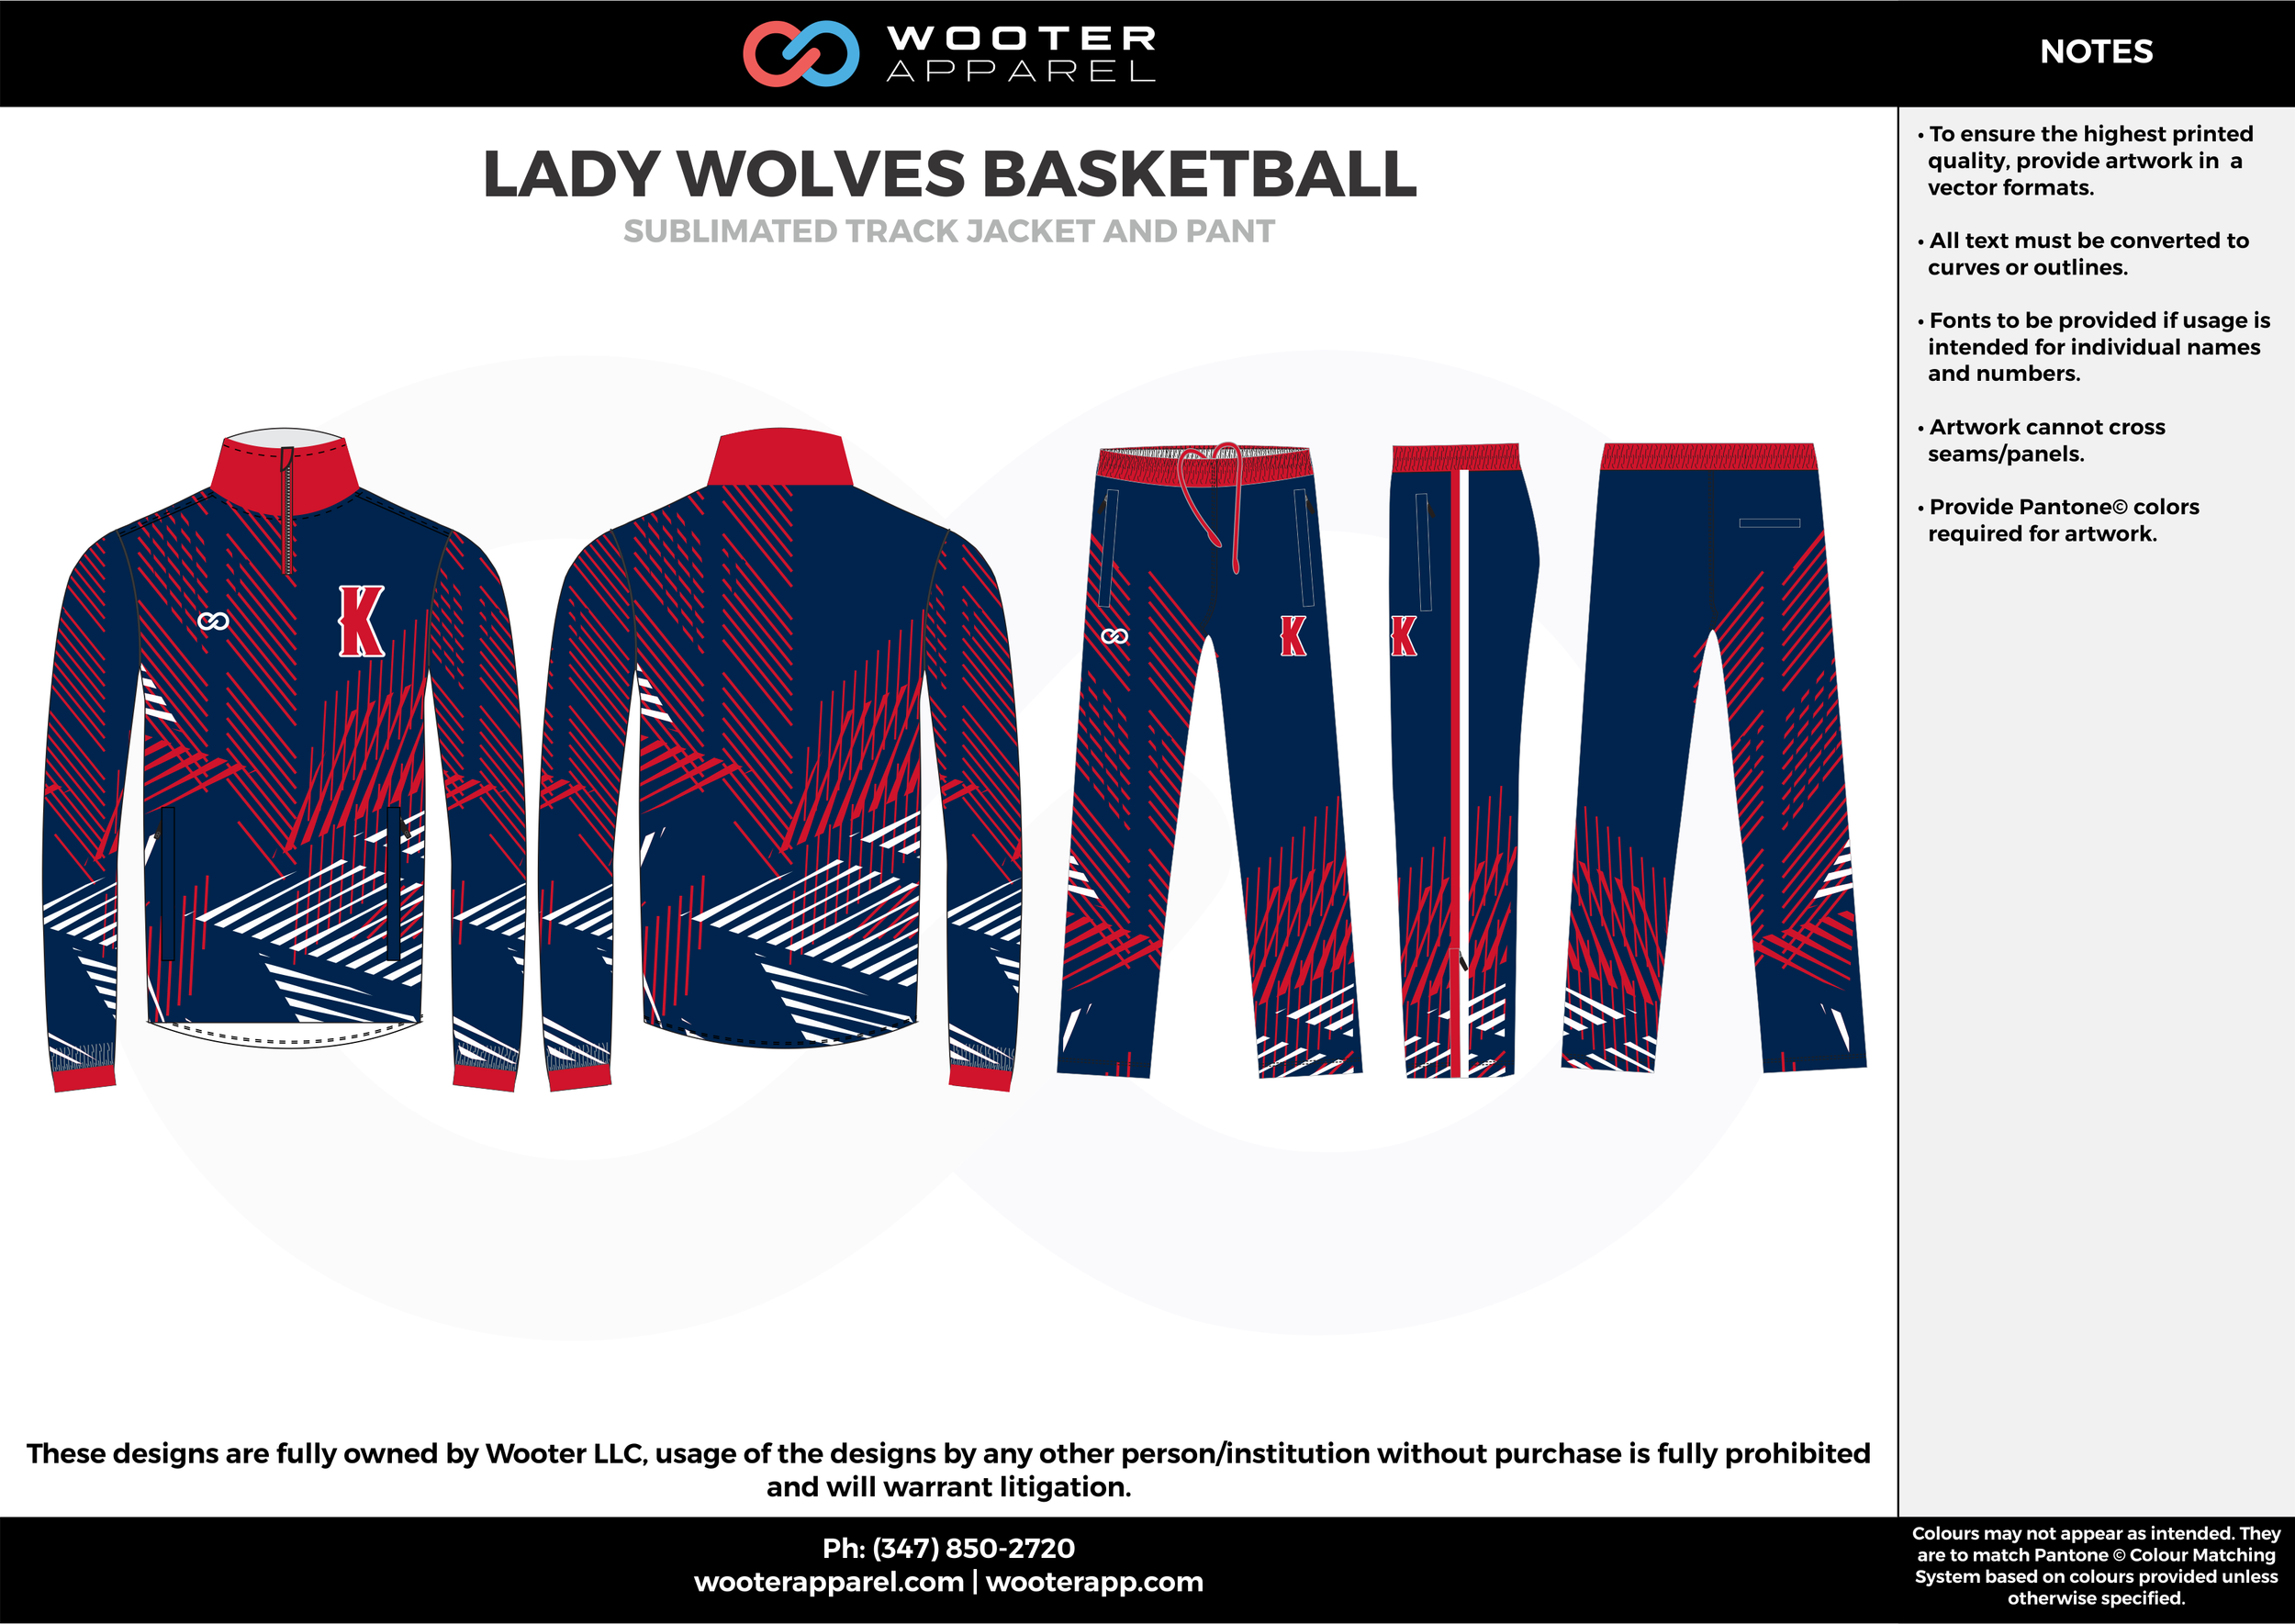 LADY WOLVES BASKETBALL blue red white  Track Jacket, Track Pants, Tracksuit, Warmup Suit